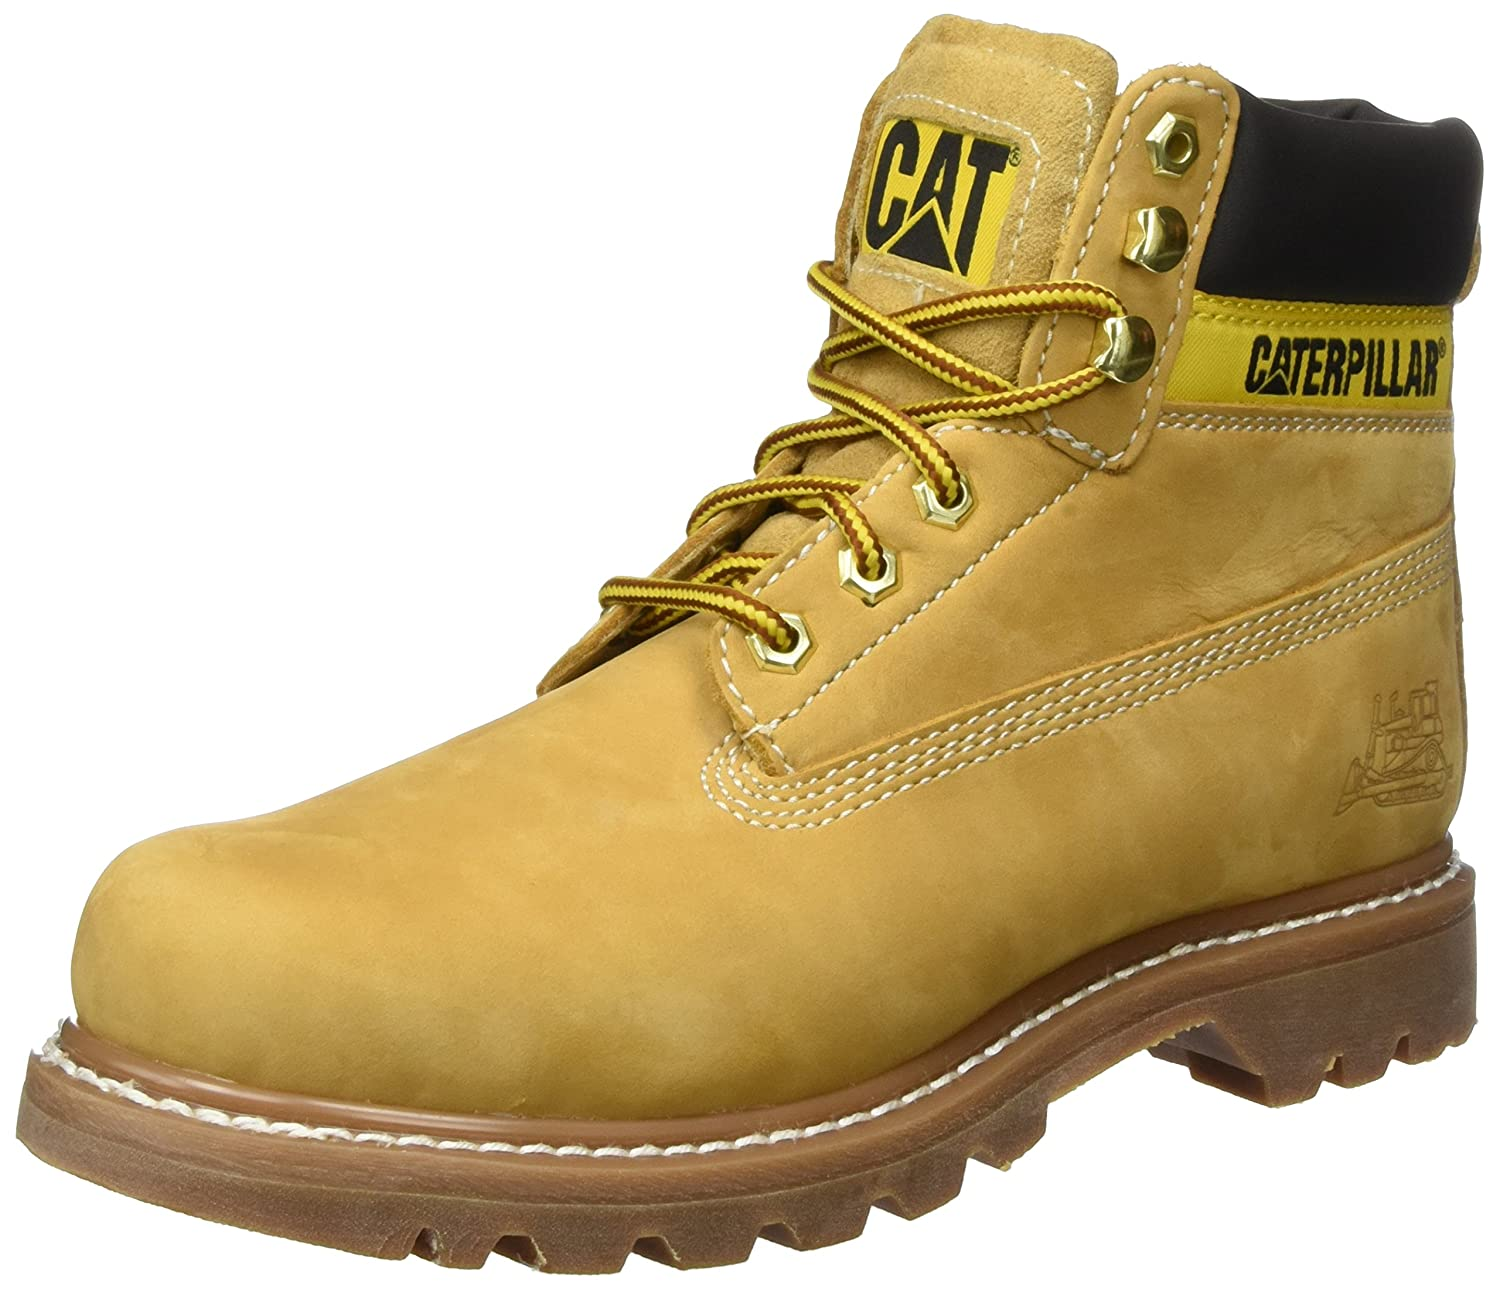 caterpillar shoes guarantee